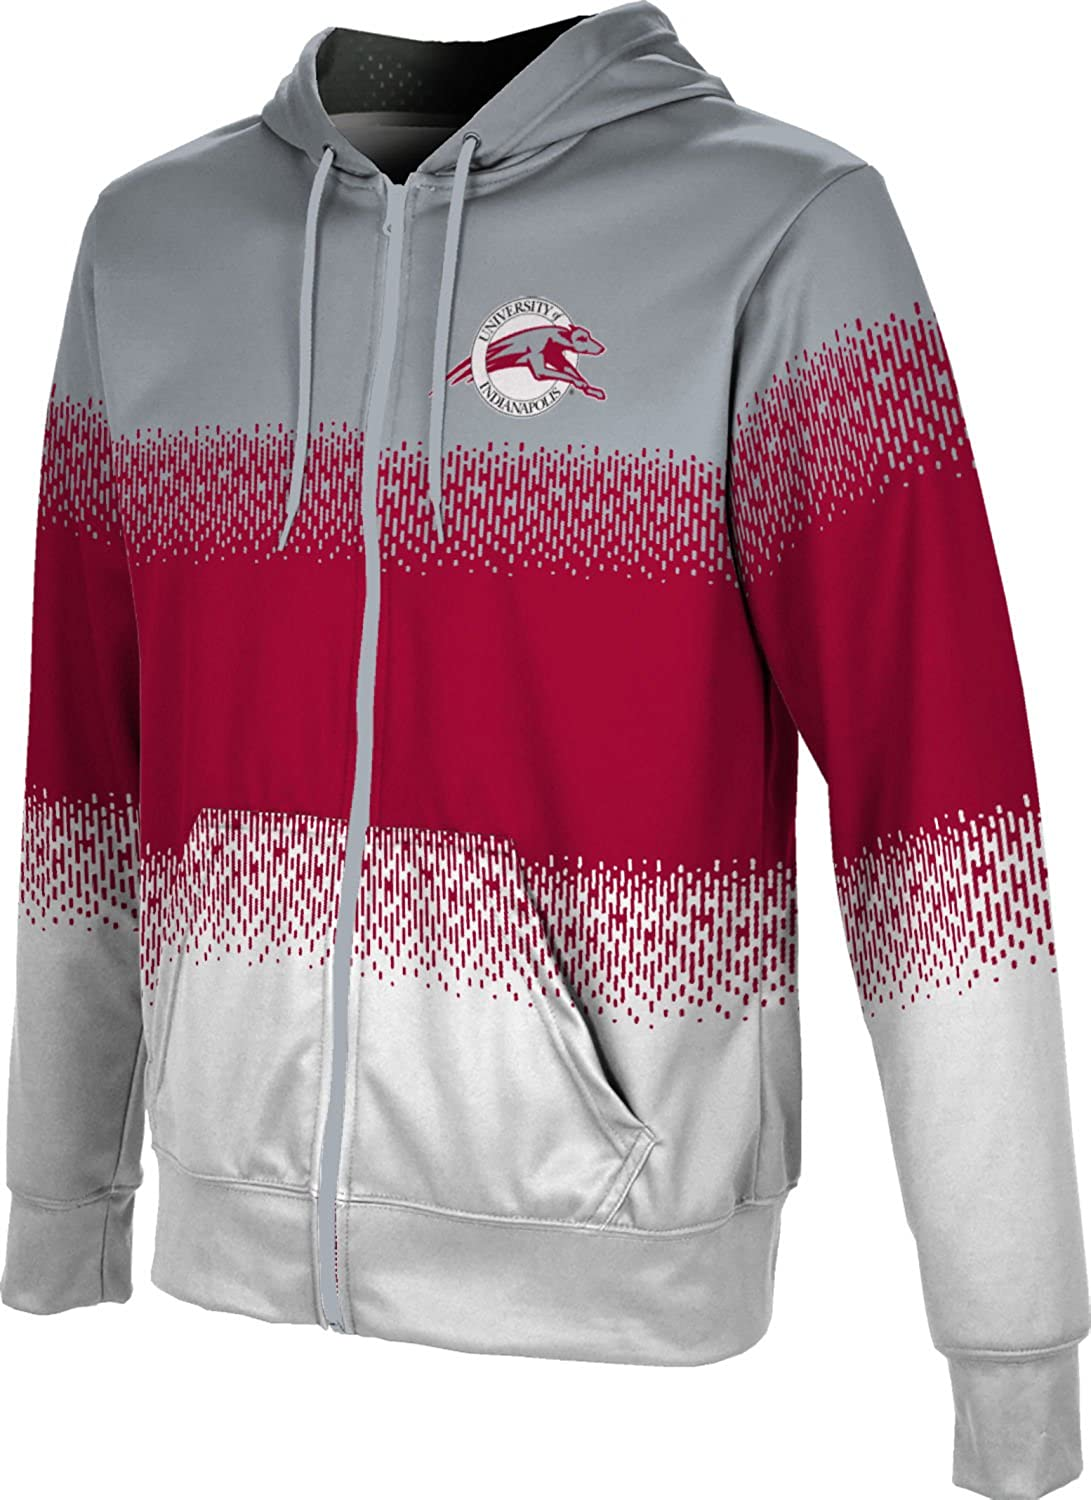 Max 68% OFF Year-end annual account ProSphere University of Indianapolis Zipper Hoodie School Boys'